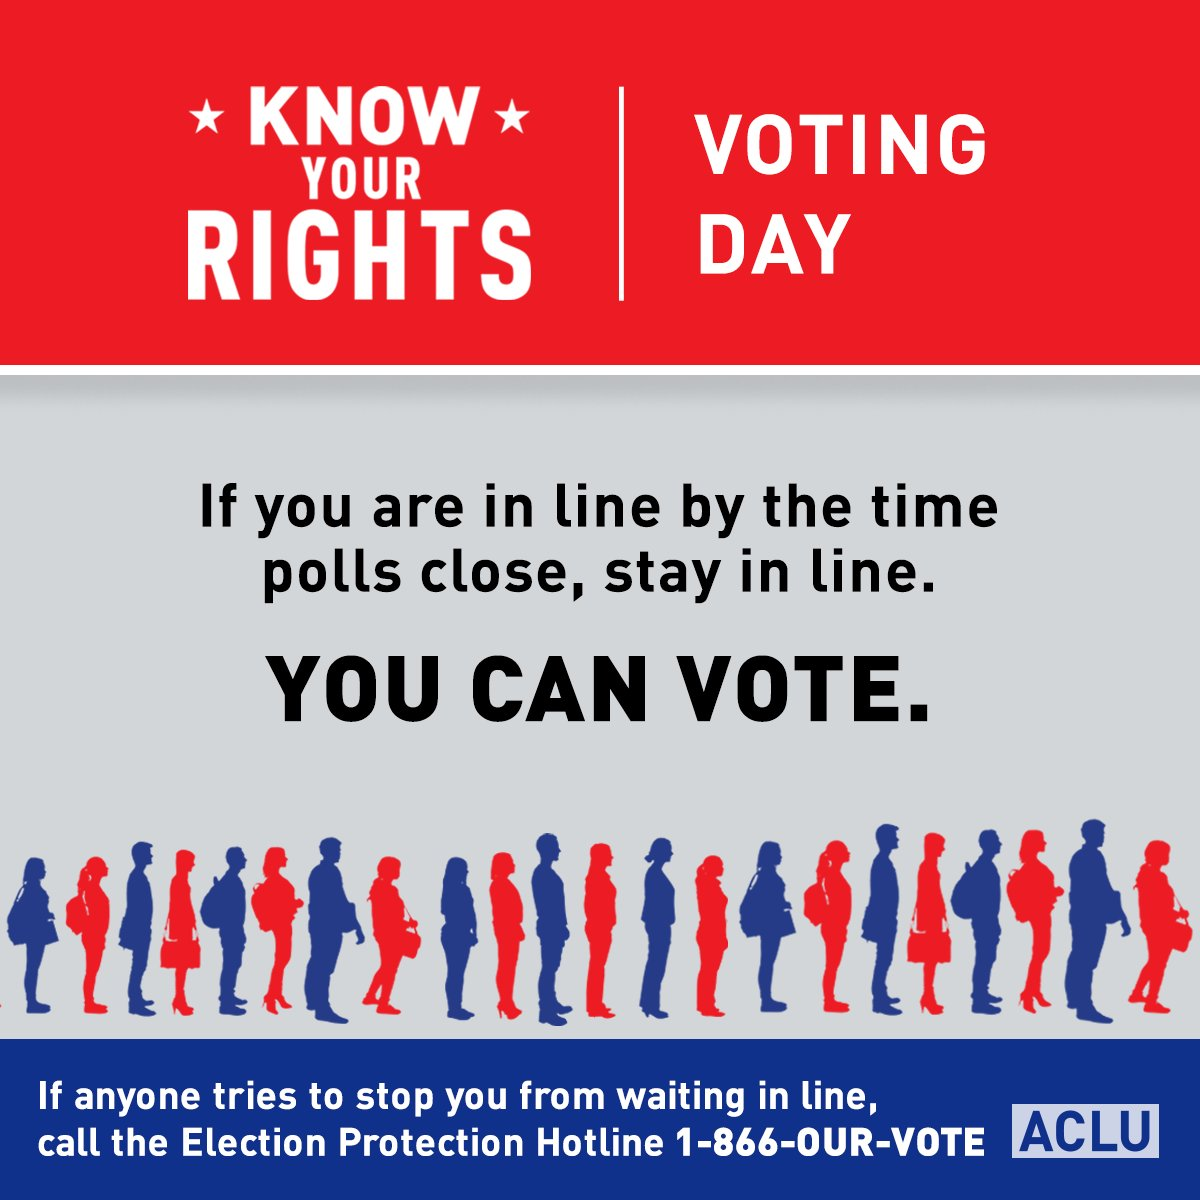 PSA: If you are in line by the time the polls close, stay in line. https://t.co/zA9KkkaMRU